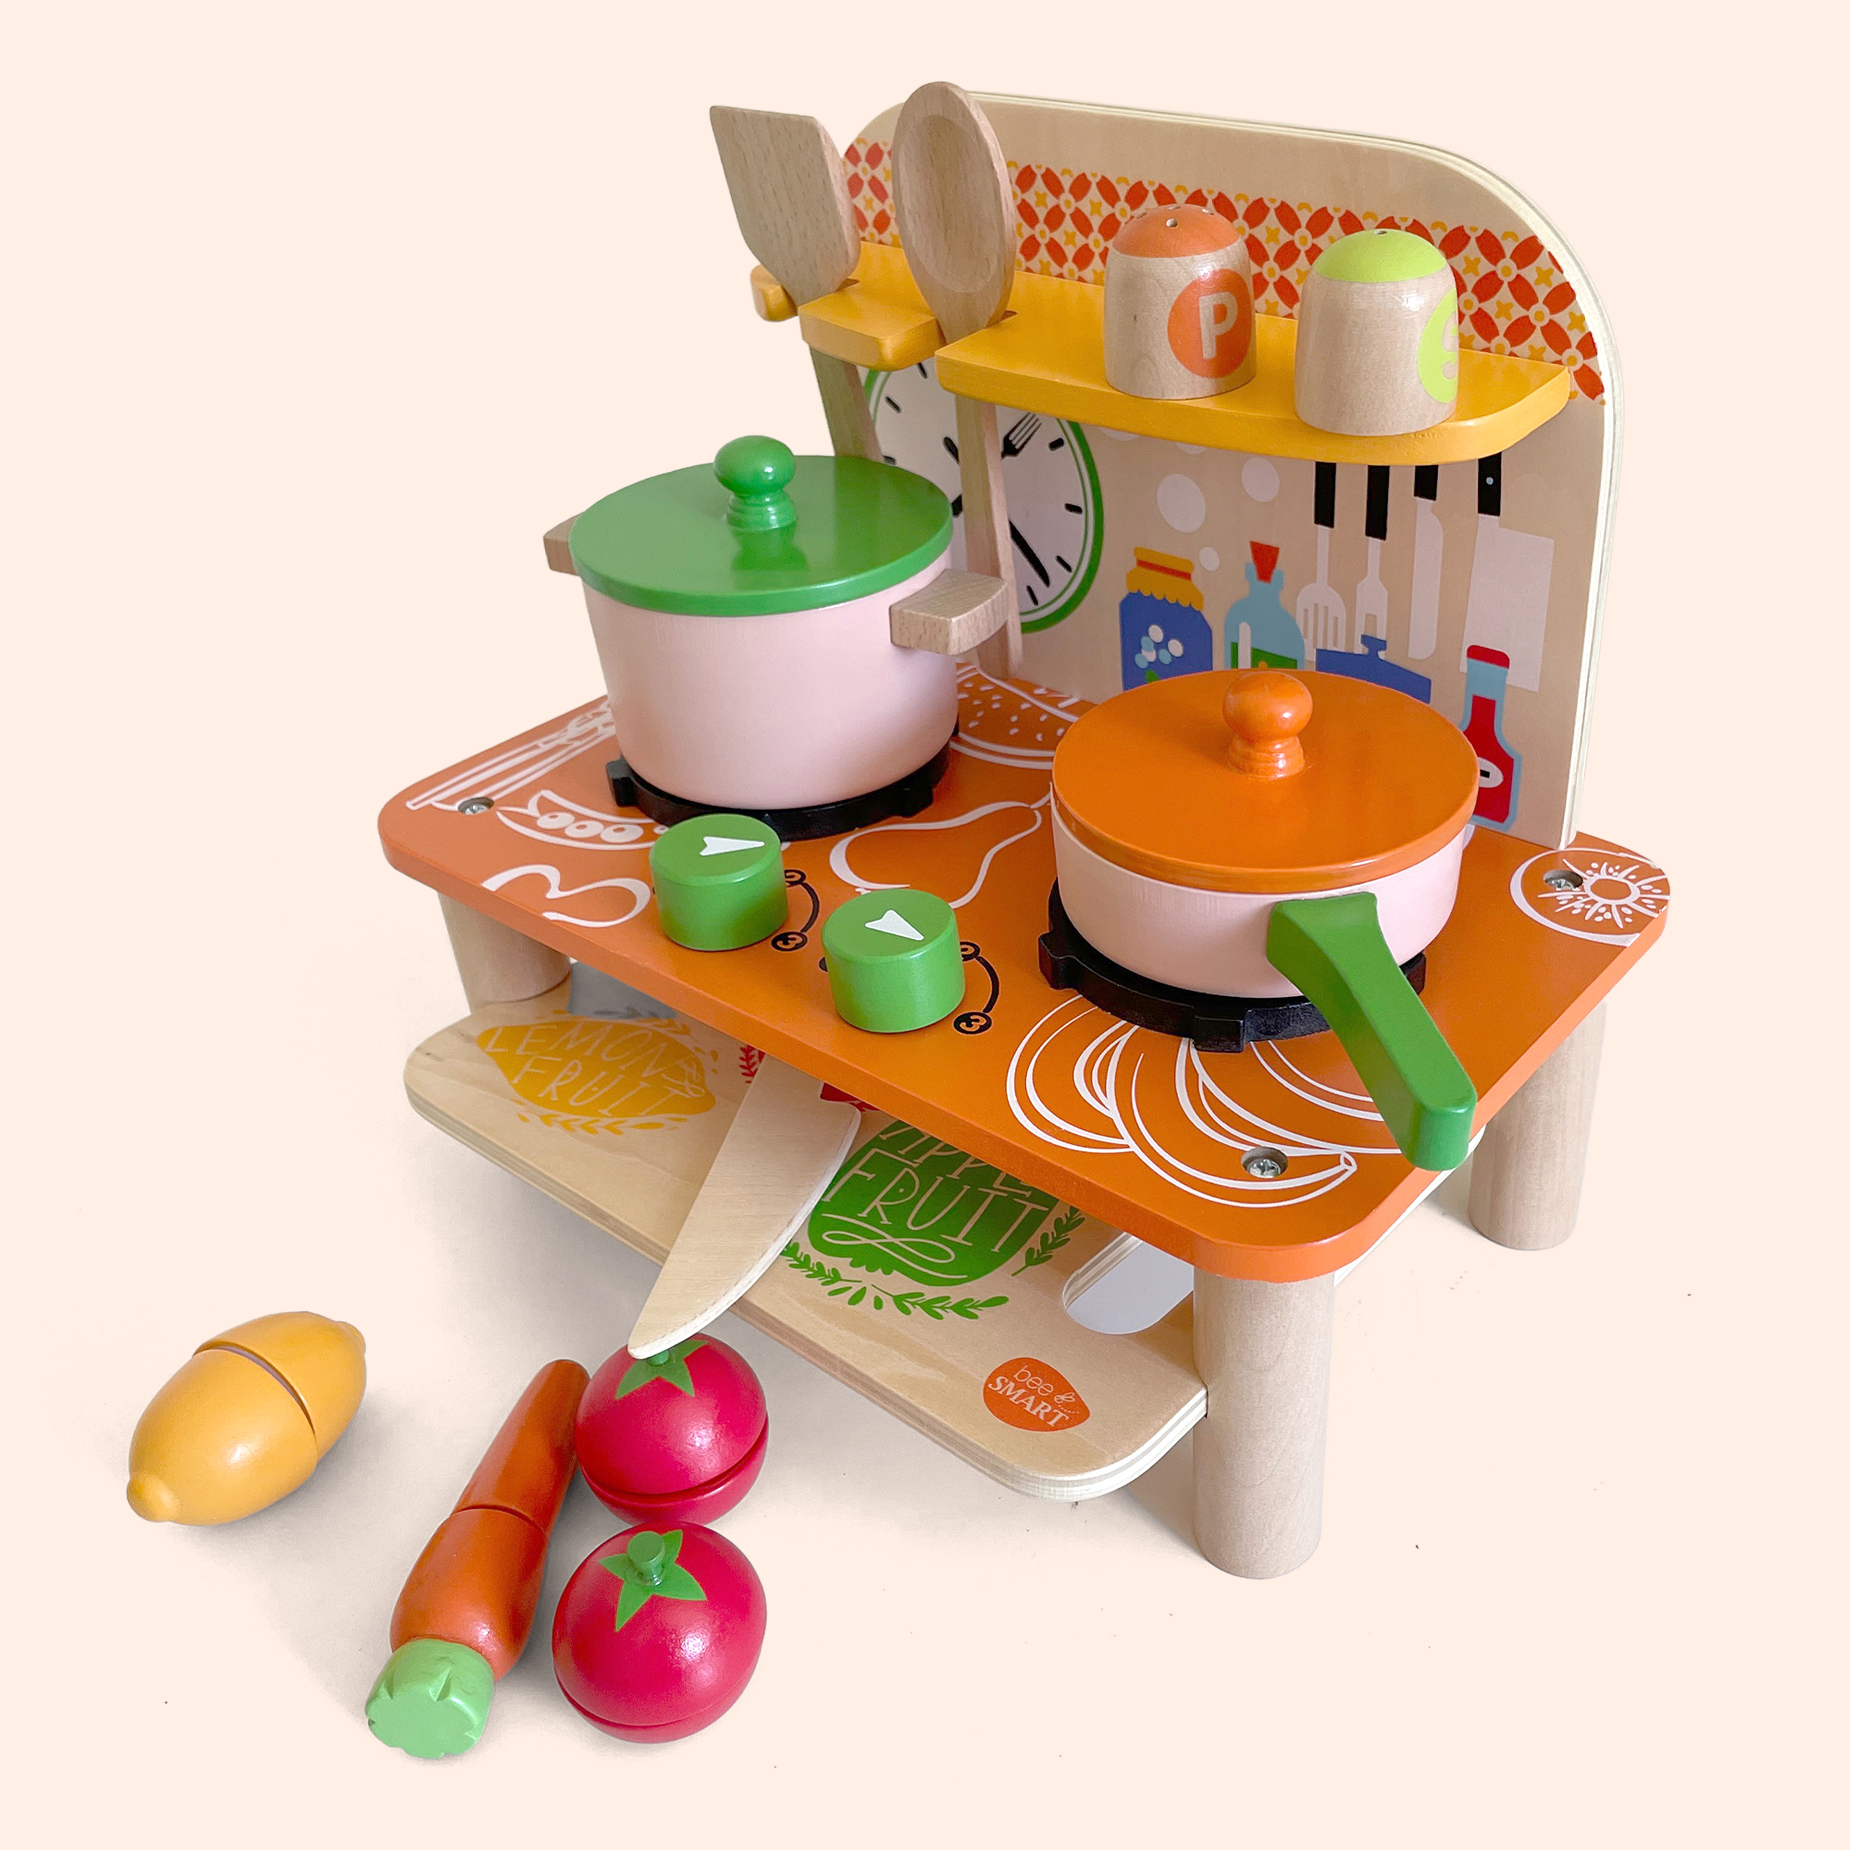 Colourful Wooden Kitchen Playset